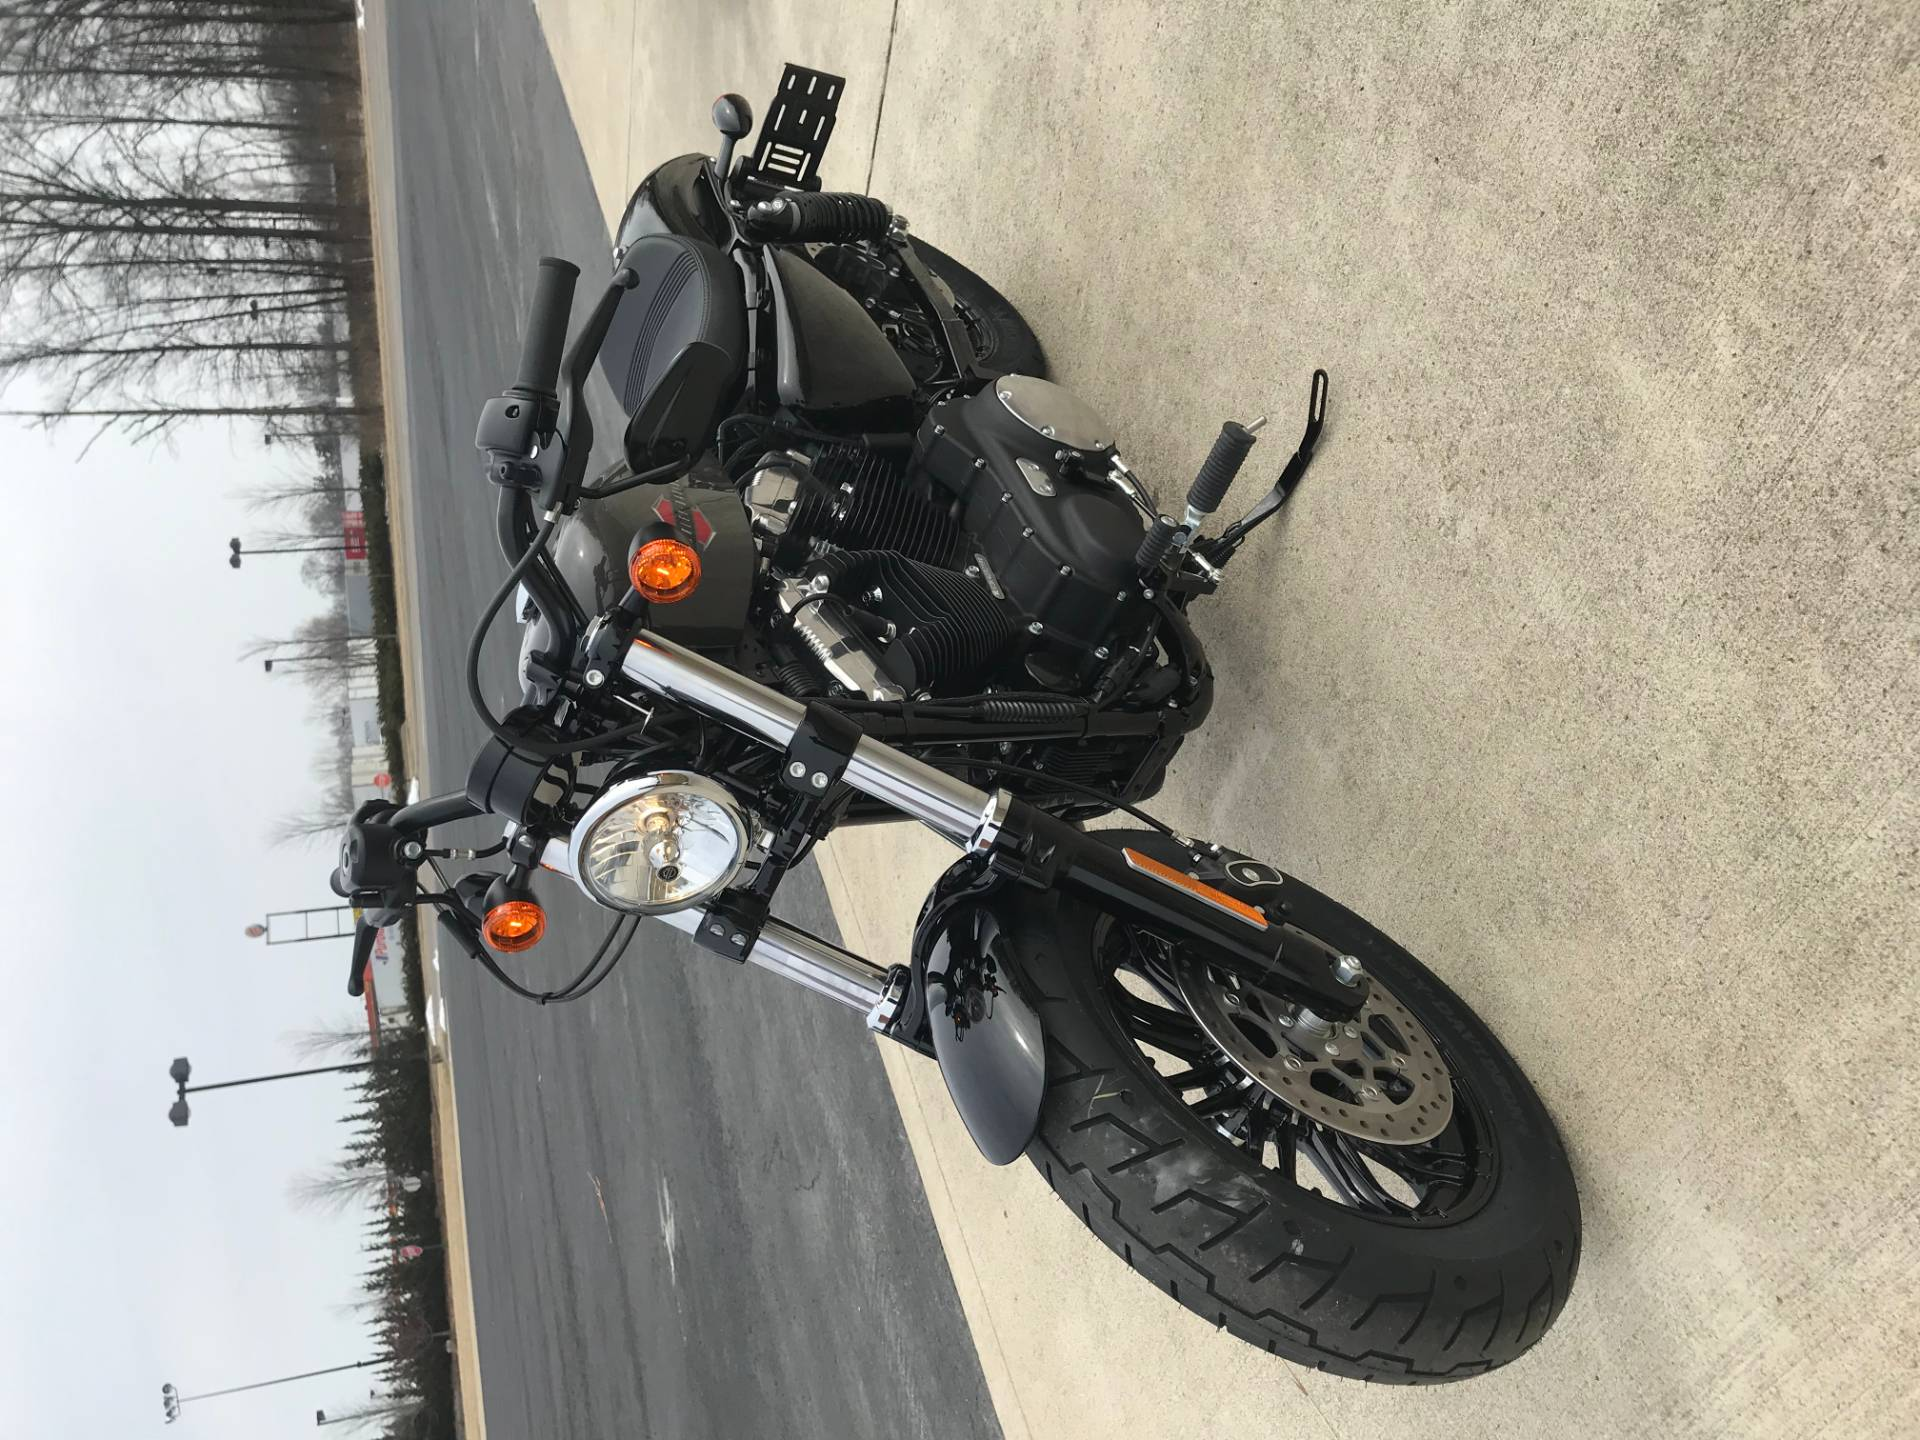 2019 Harley-Davidson FORTY EIGHT in Sunbury, Ohio